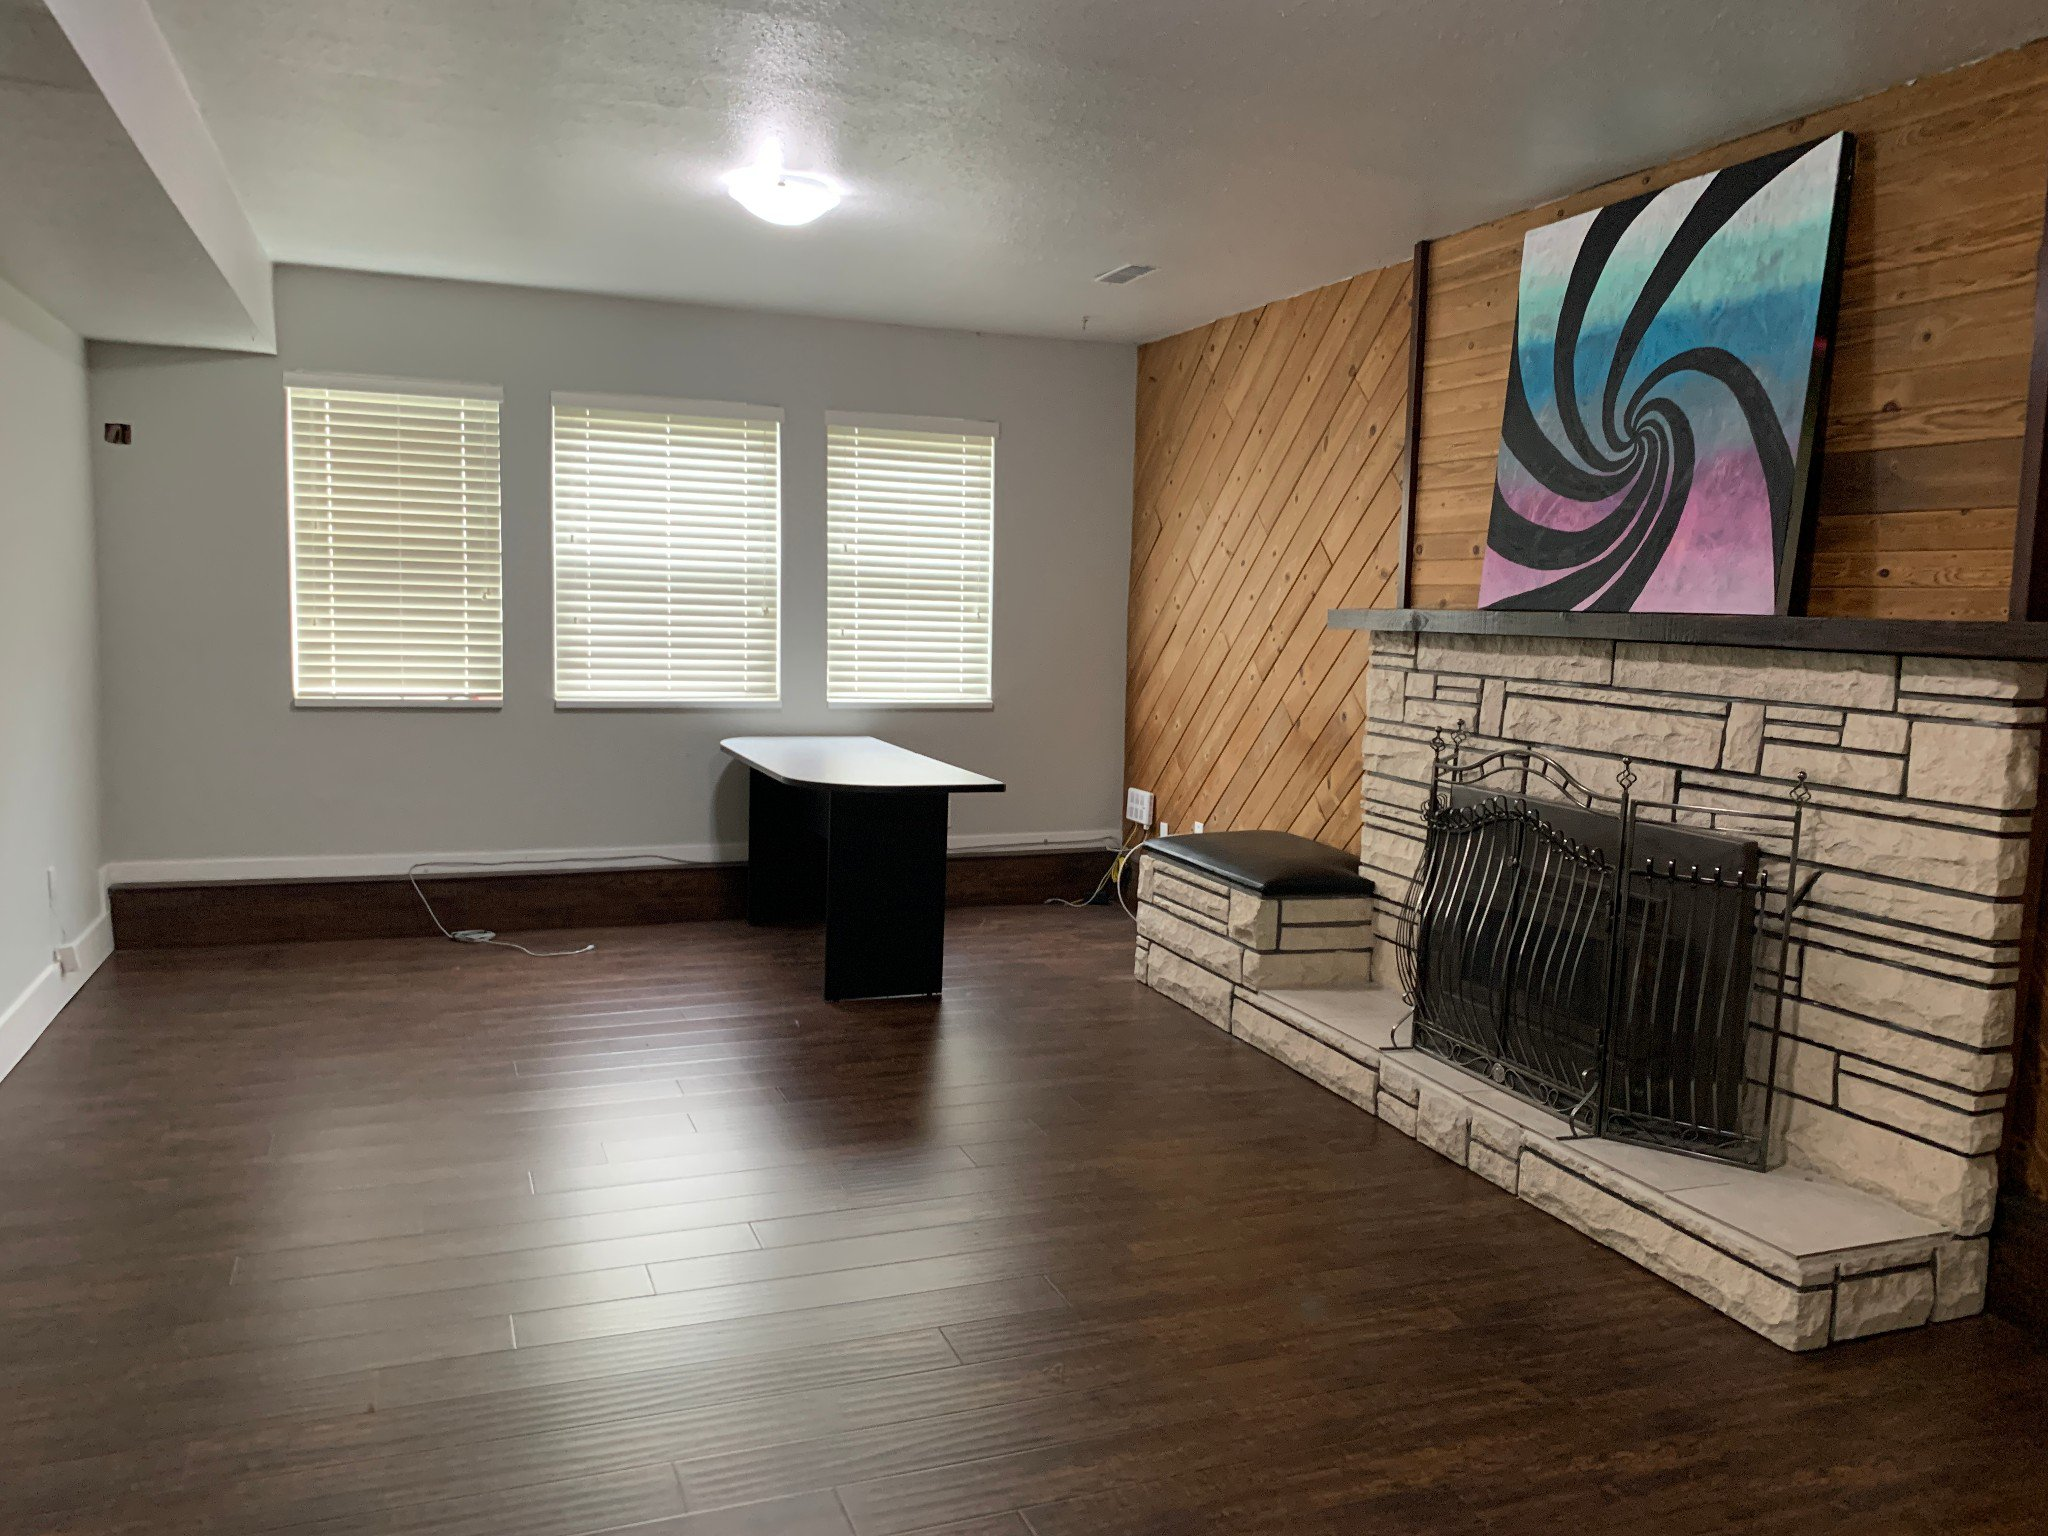 Photo 3: Photos: BSMT 2046 Ridgeway St. in Abbotsford: Central Abbotsford Condo for rent